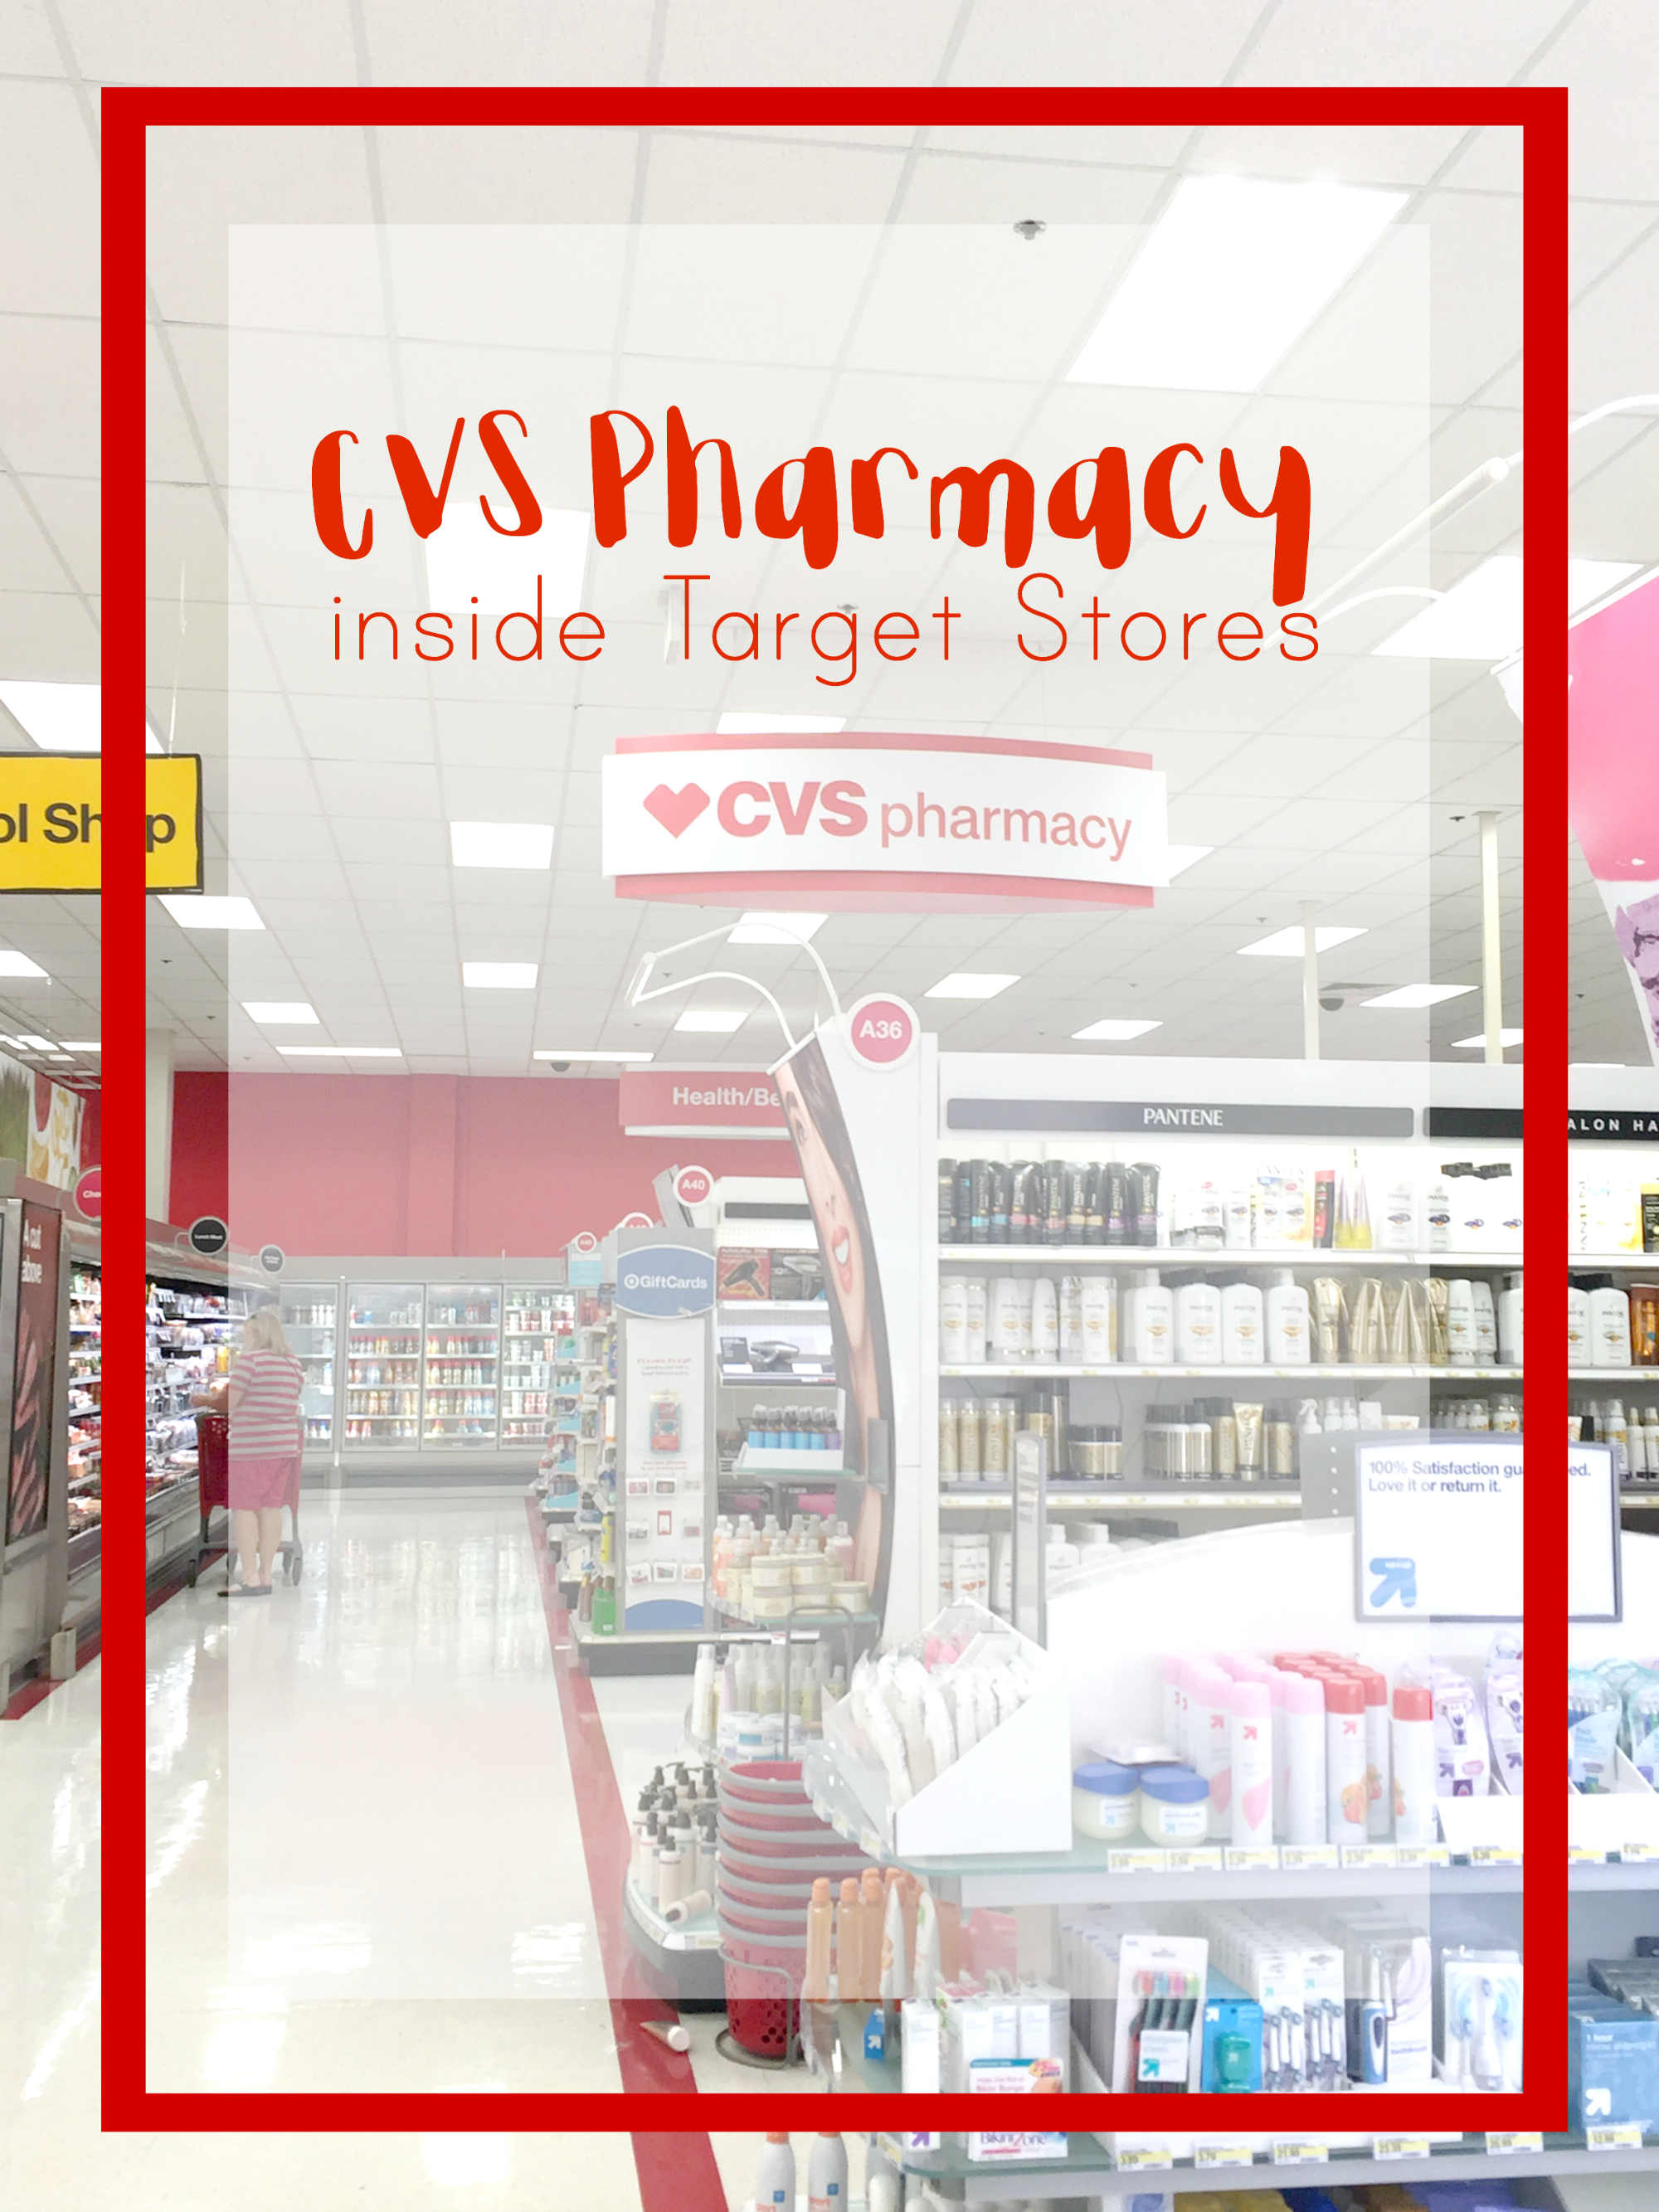 cvs pharmacy inside target stores nationwide simply being mommy you can now cvs pharmacy inside target stores nationwide see why this a great